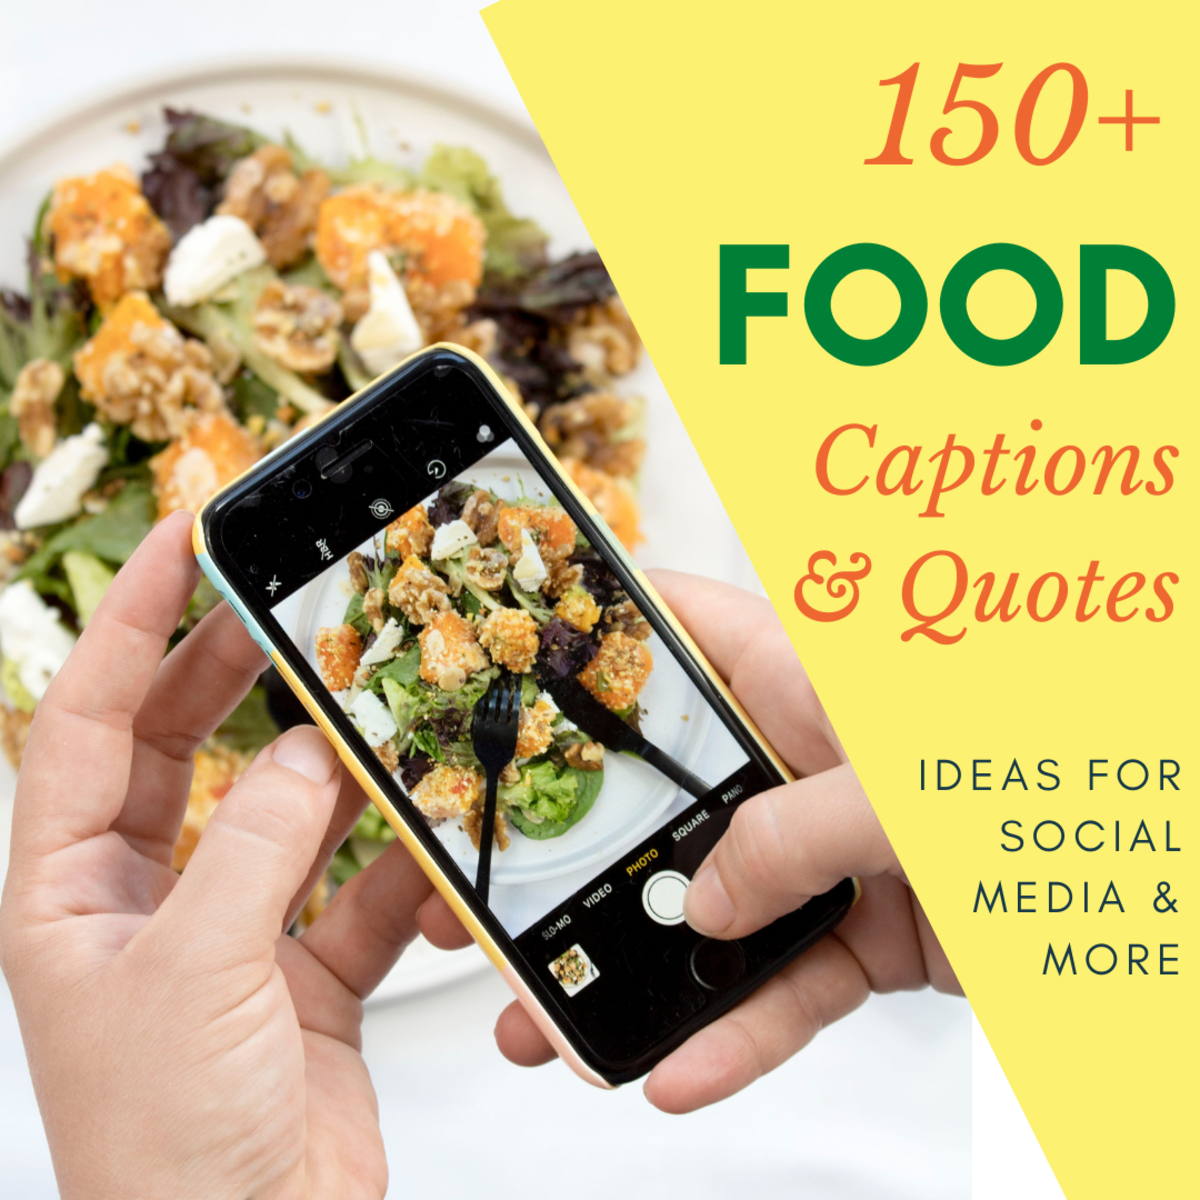 If you love to post pictures of your food, this guide may help you.